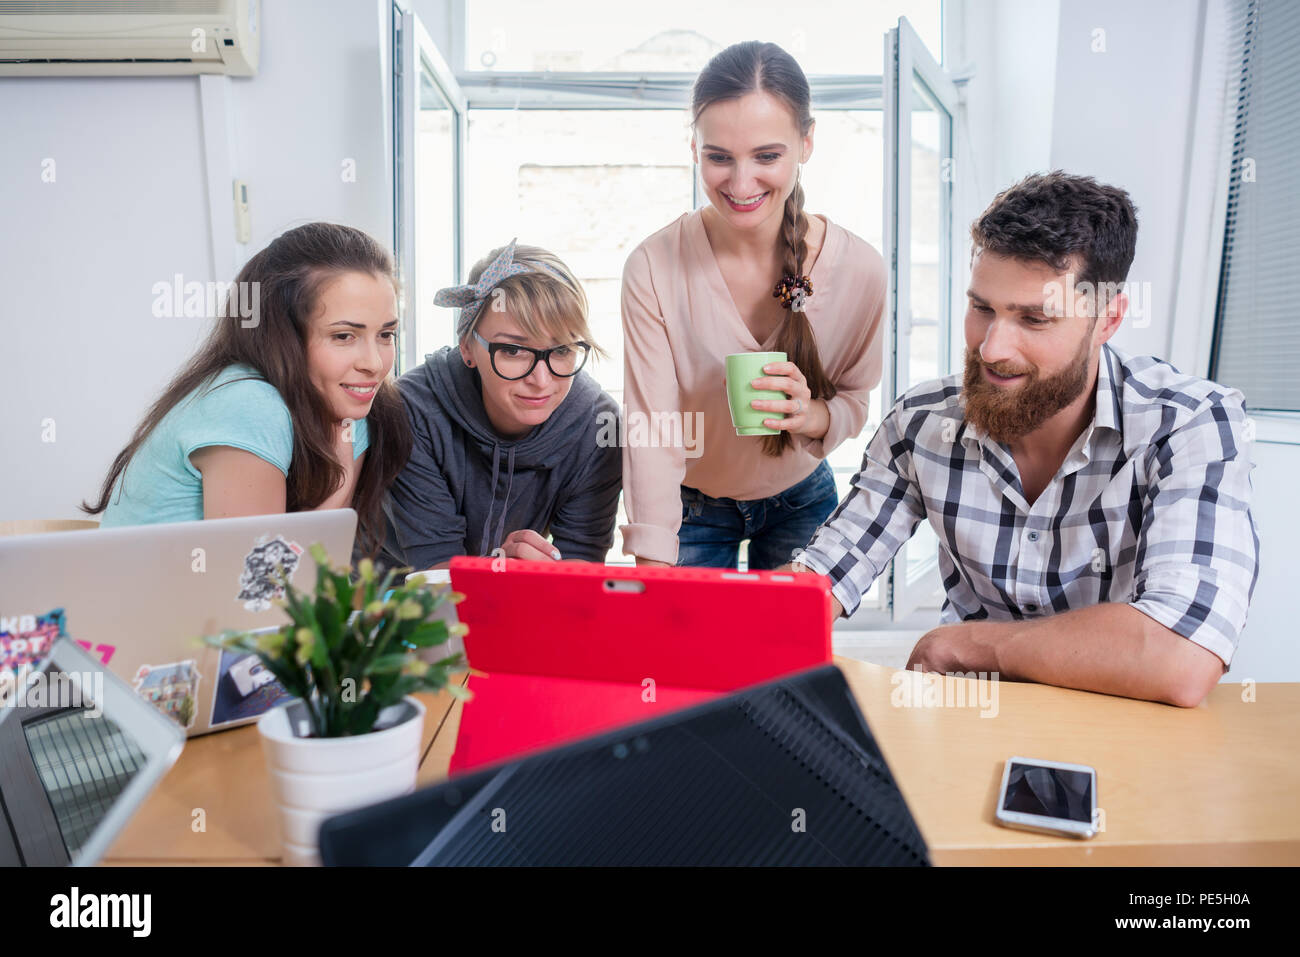 Four co-workers watching a business presentation in a modern shared office space - Stock Image